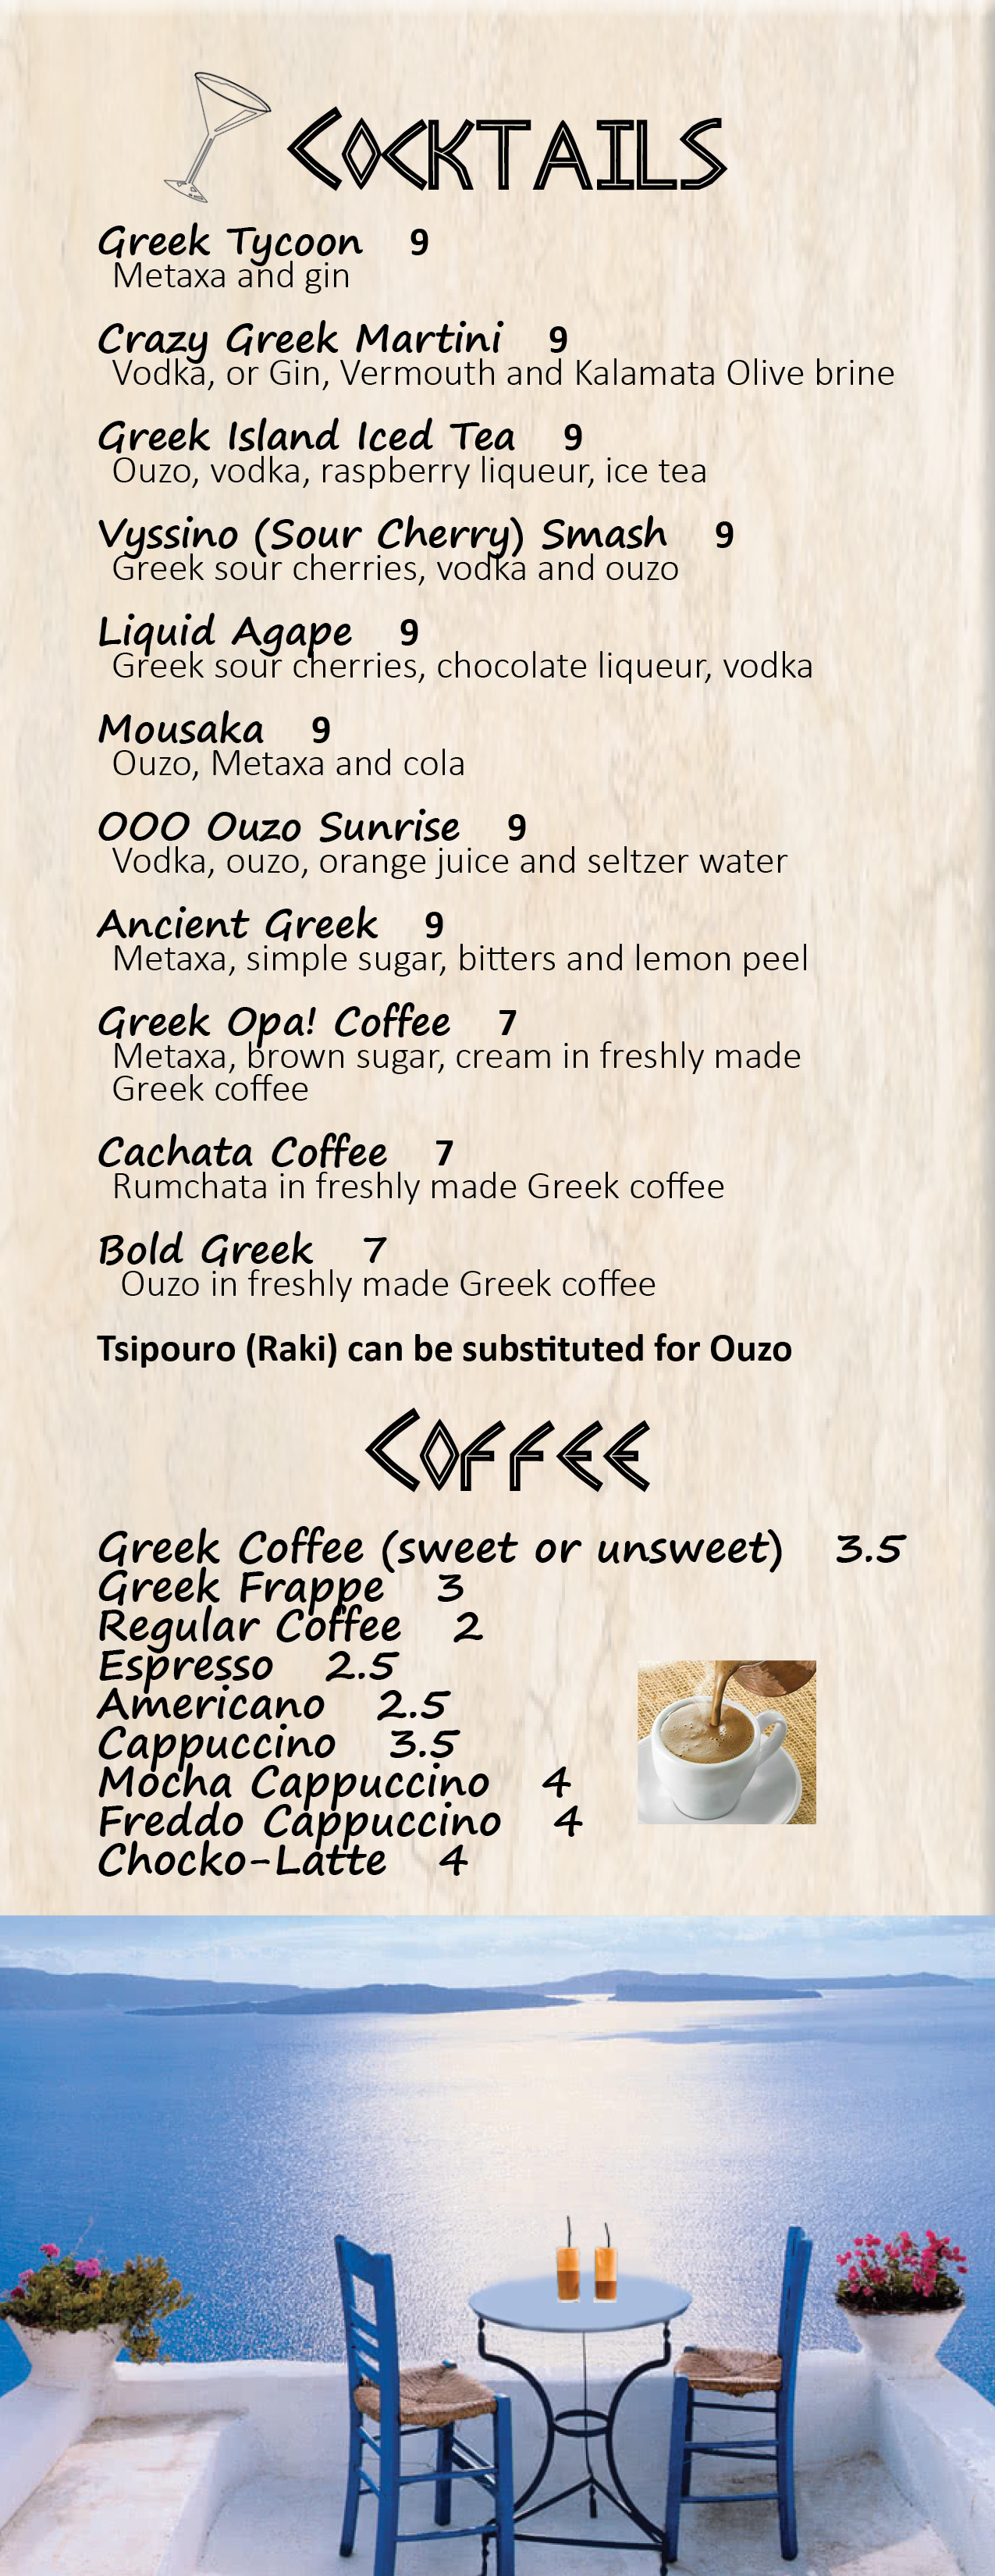 Dessert and martinis coffee 062920192.png